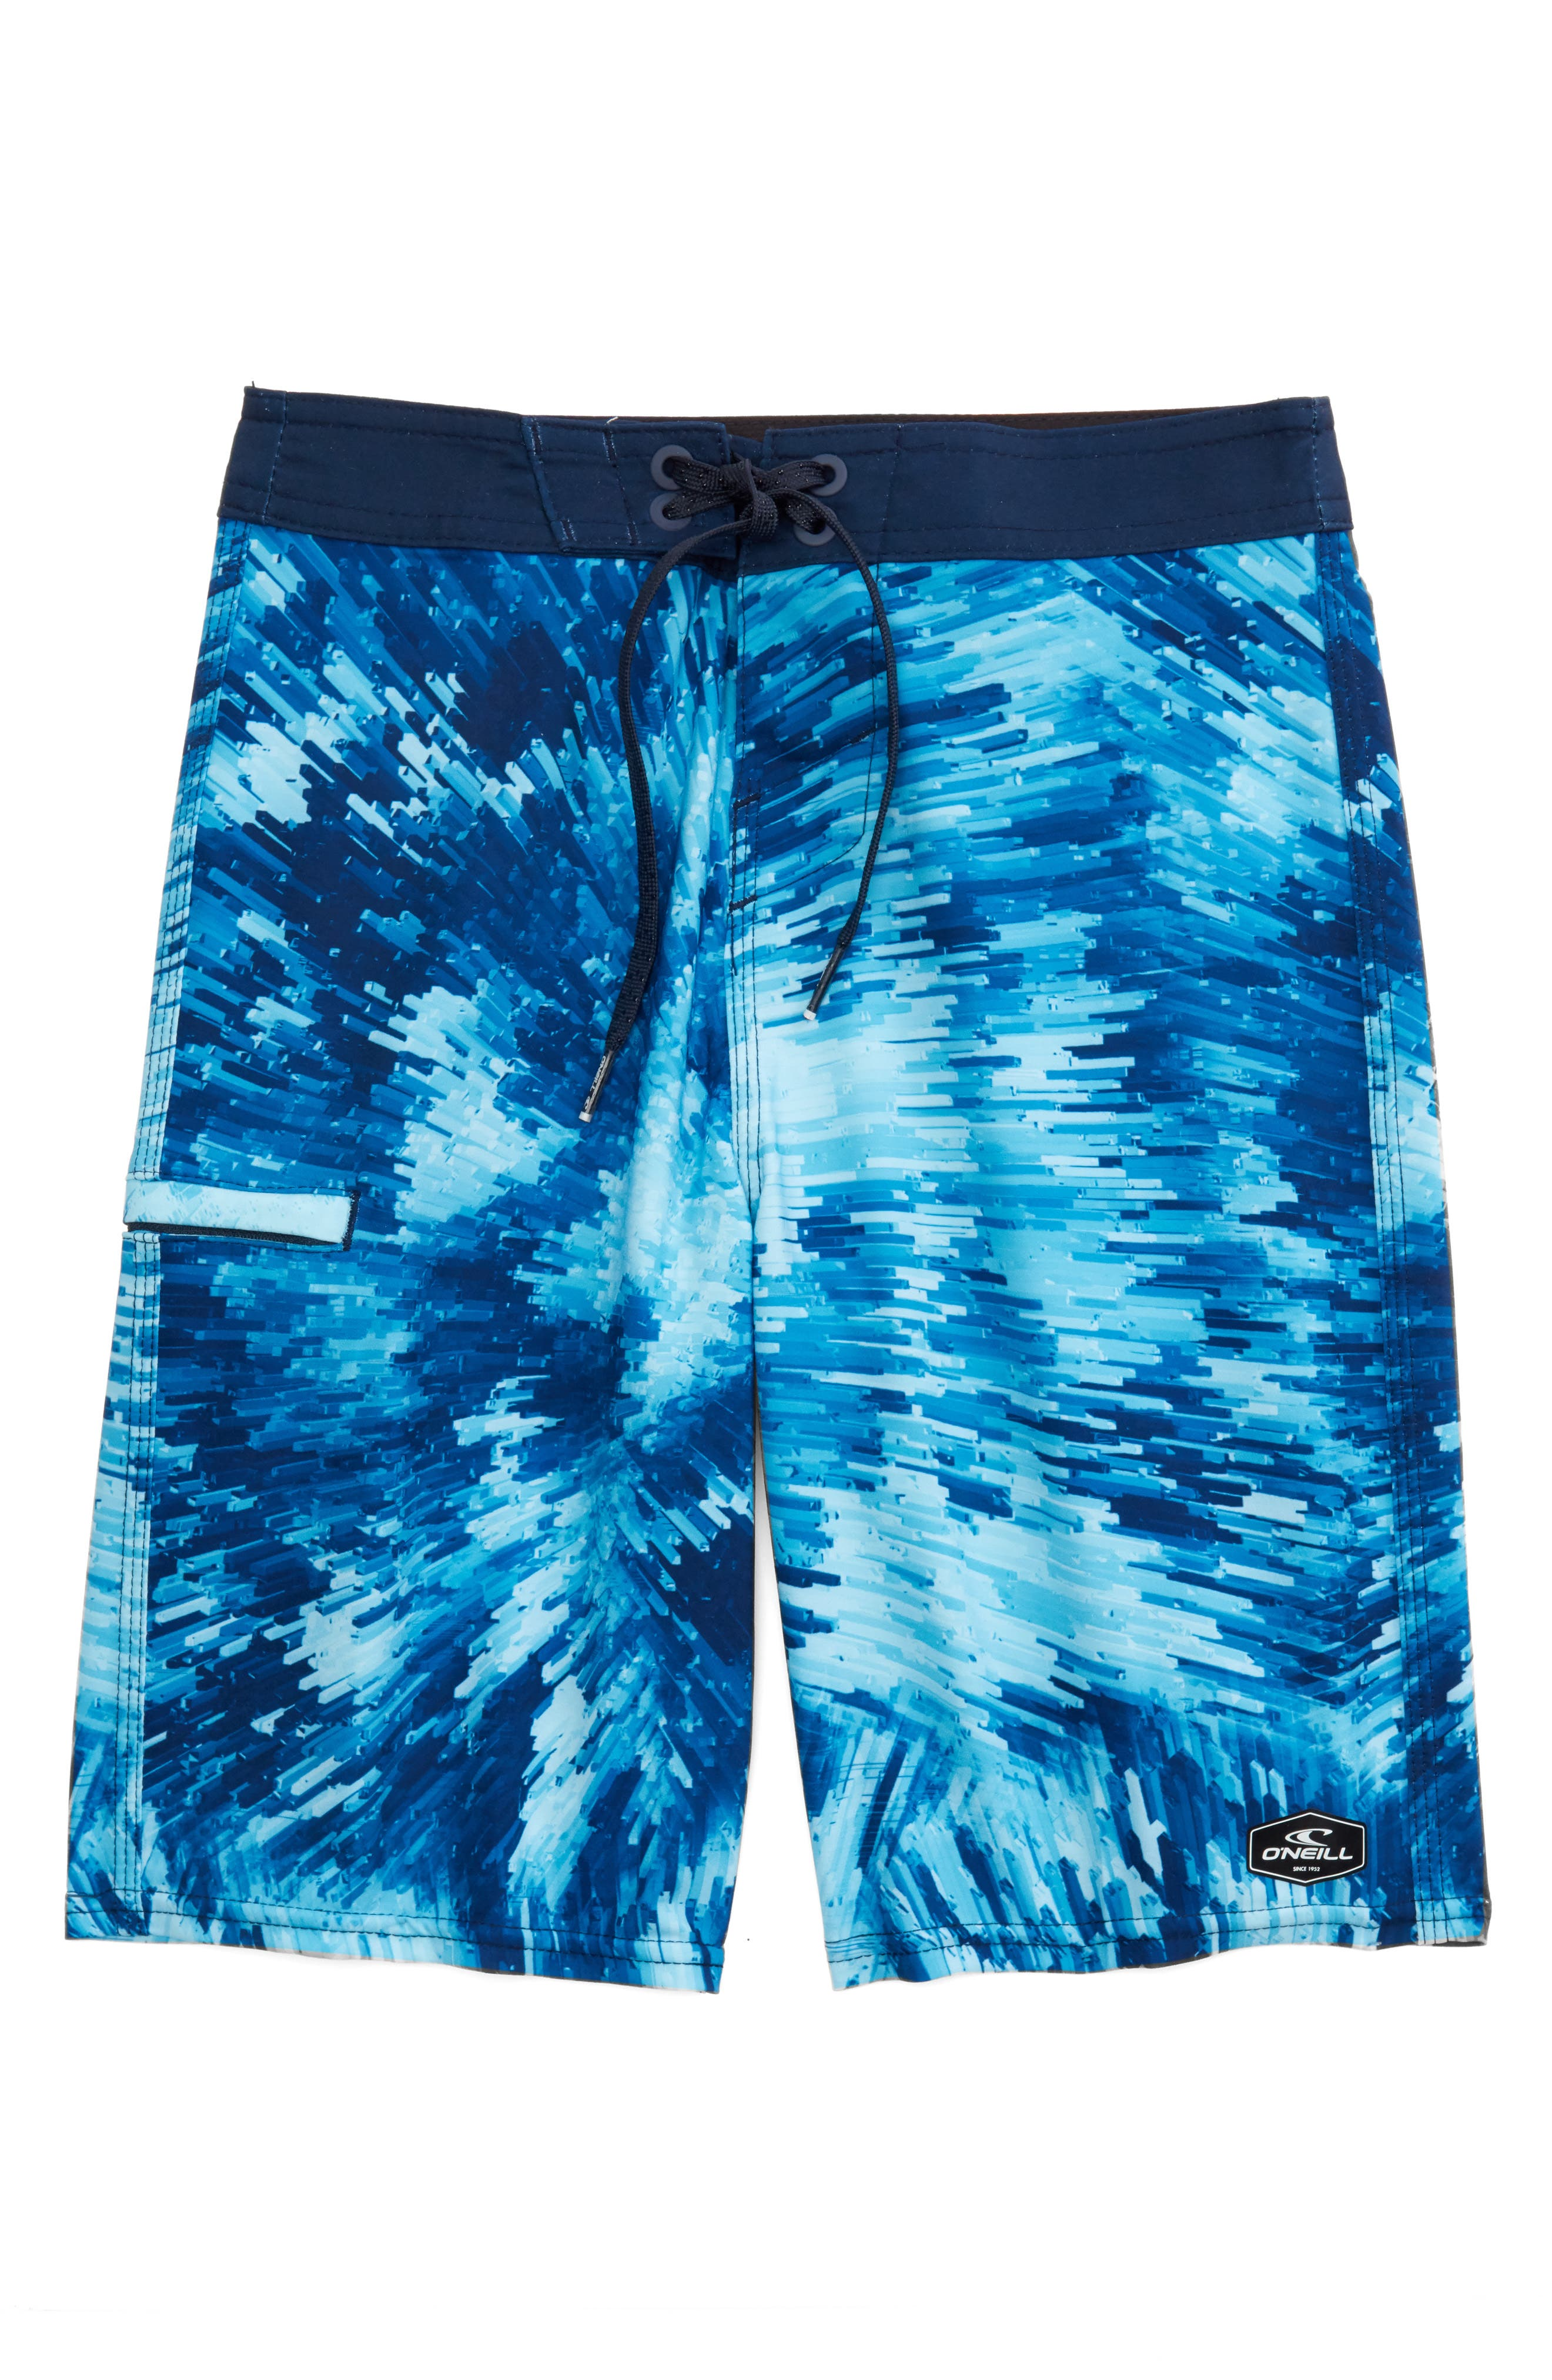 Hyperfreak Crystalize Board Shorts,                             Main thumbnail 1, color,                             400